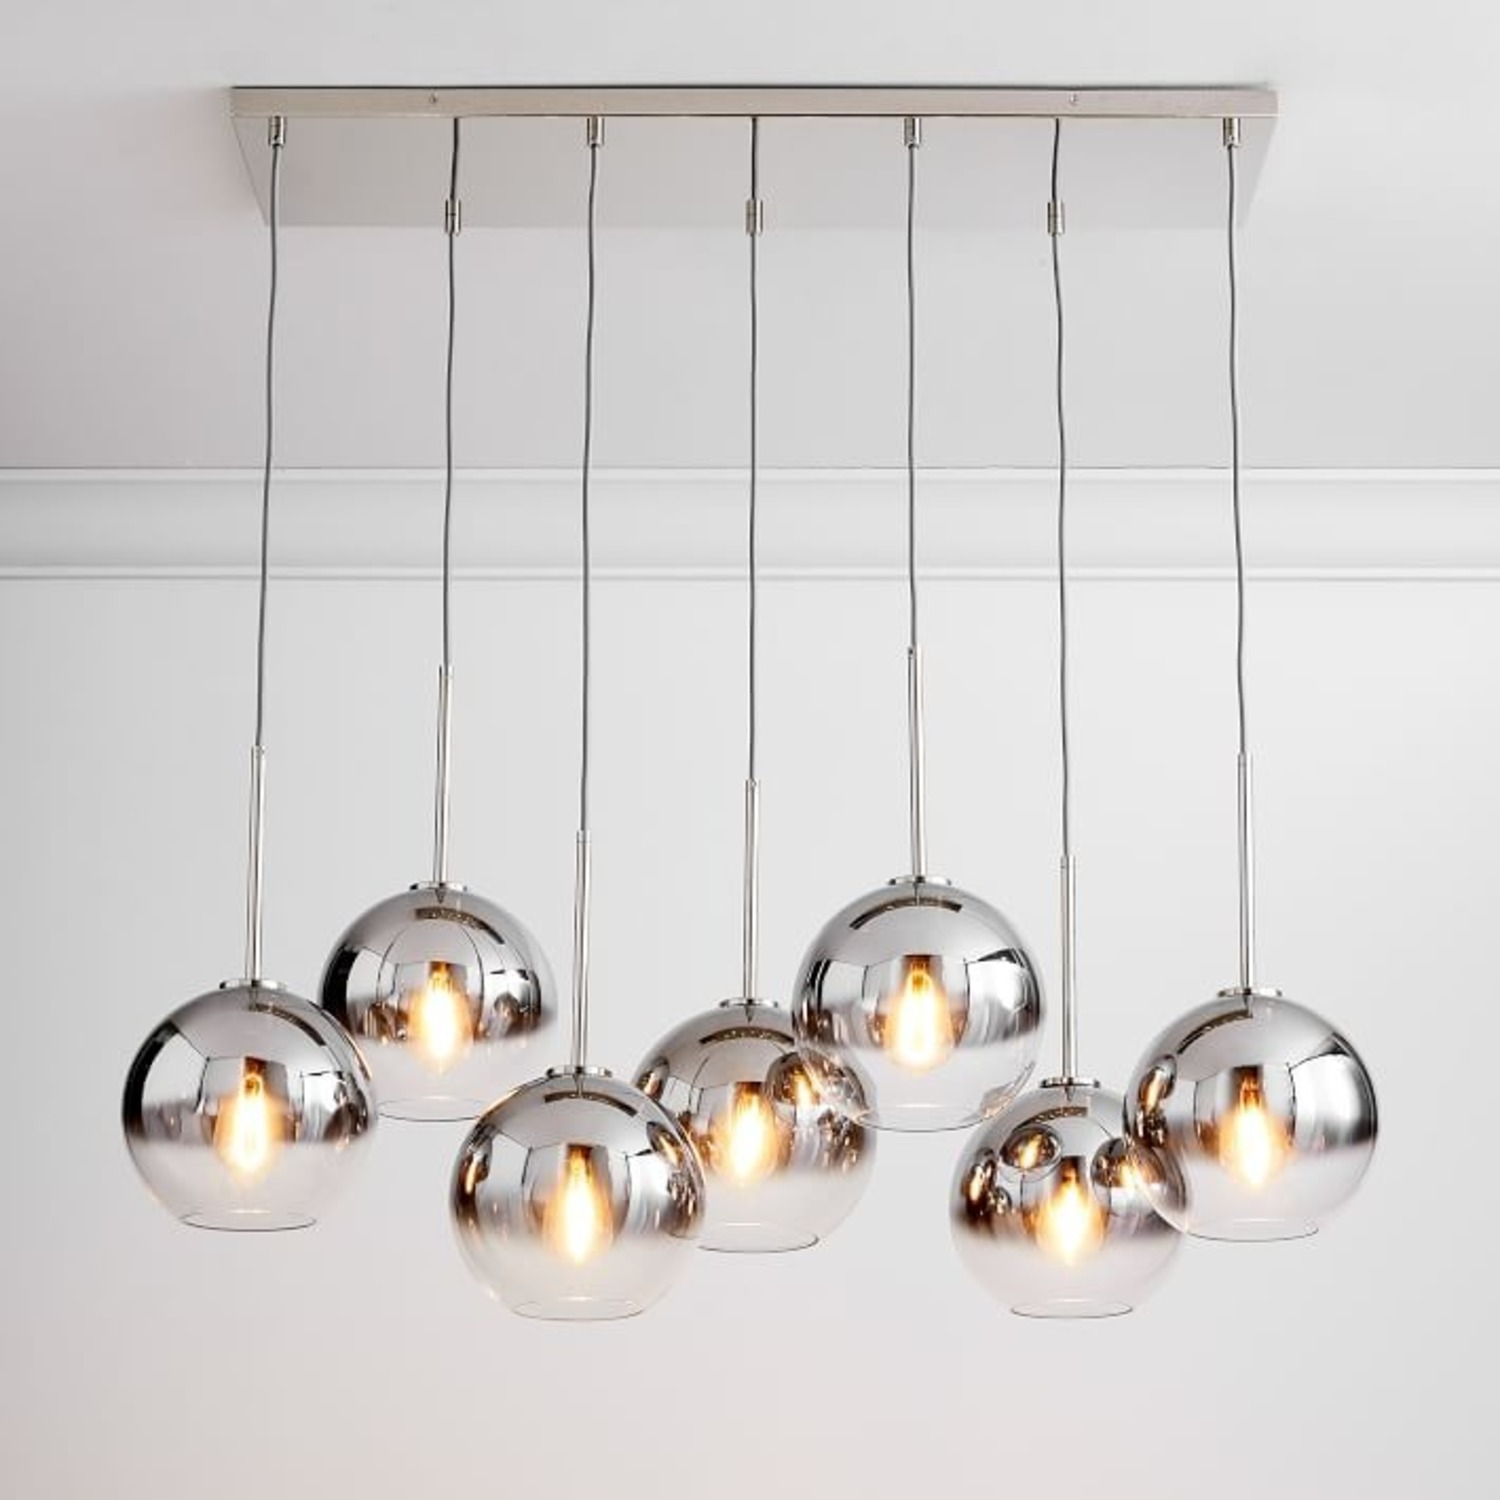 West Elm Sculptural 7-Light Chandelier - image-1